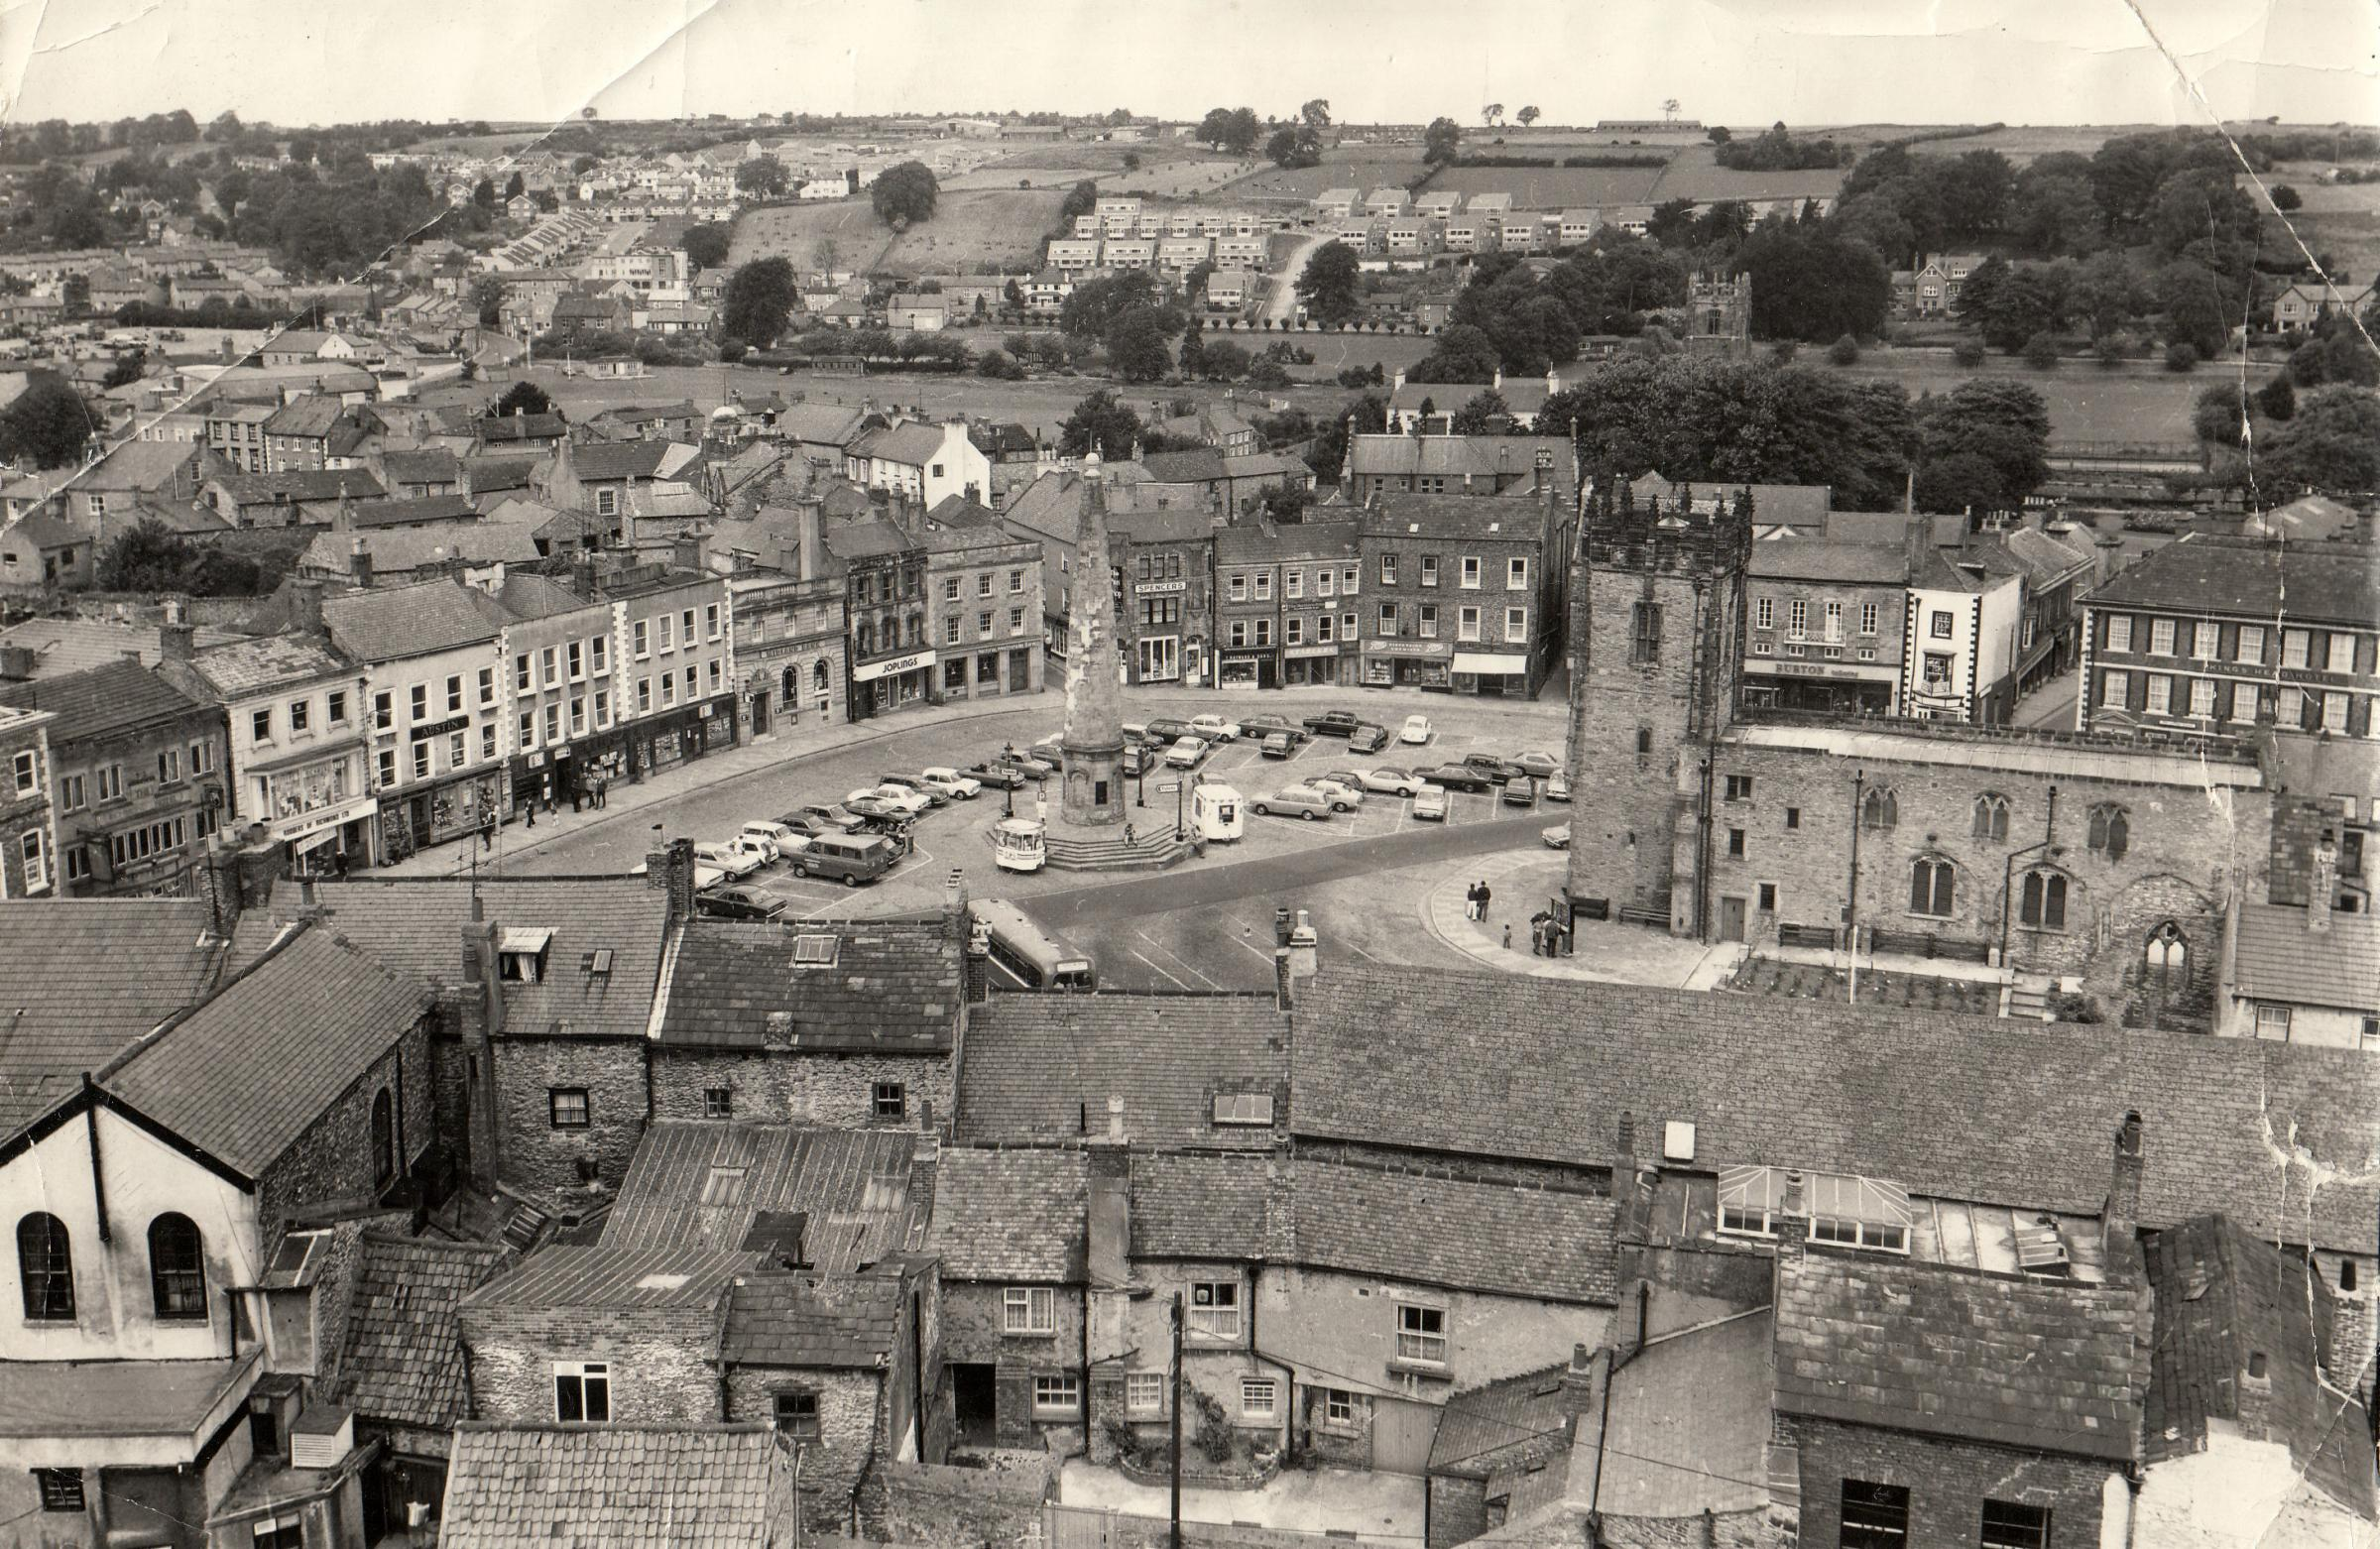 Richmond Market Place from the castle in August 1974, with the 1771 obelisk that was erected over a 12,000 gallon reservoir. The cricket club only has a small wooden pavilion, and the houses of Prior and Bolton avenues are just being built on the hillside